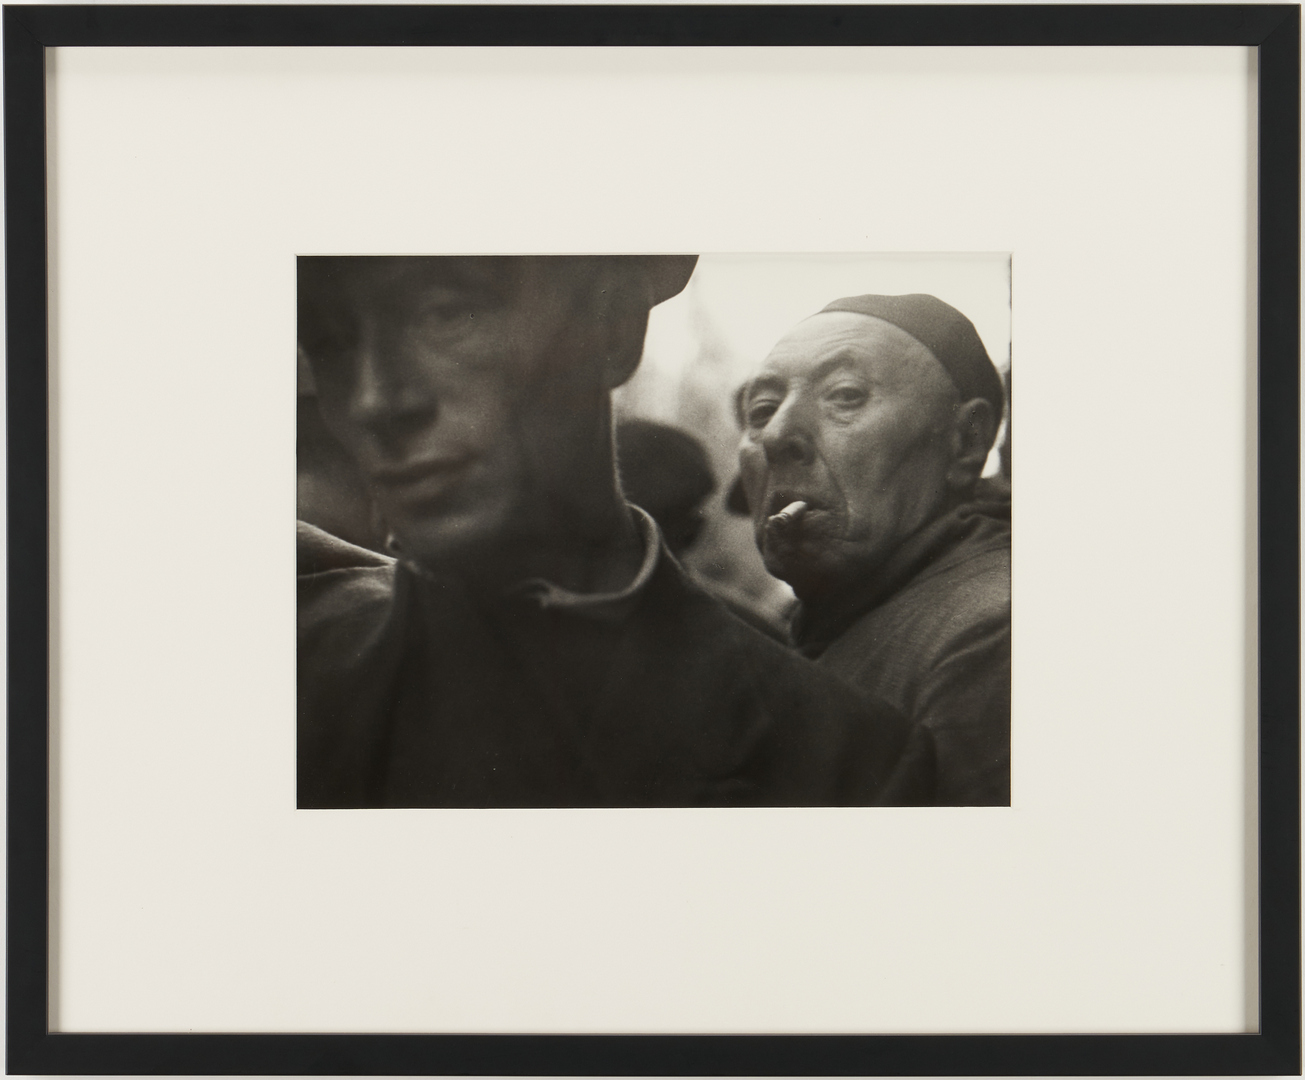 Lot 520: Leon Levinstein Photograph, Lower East Side